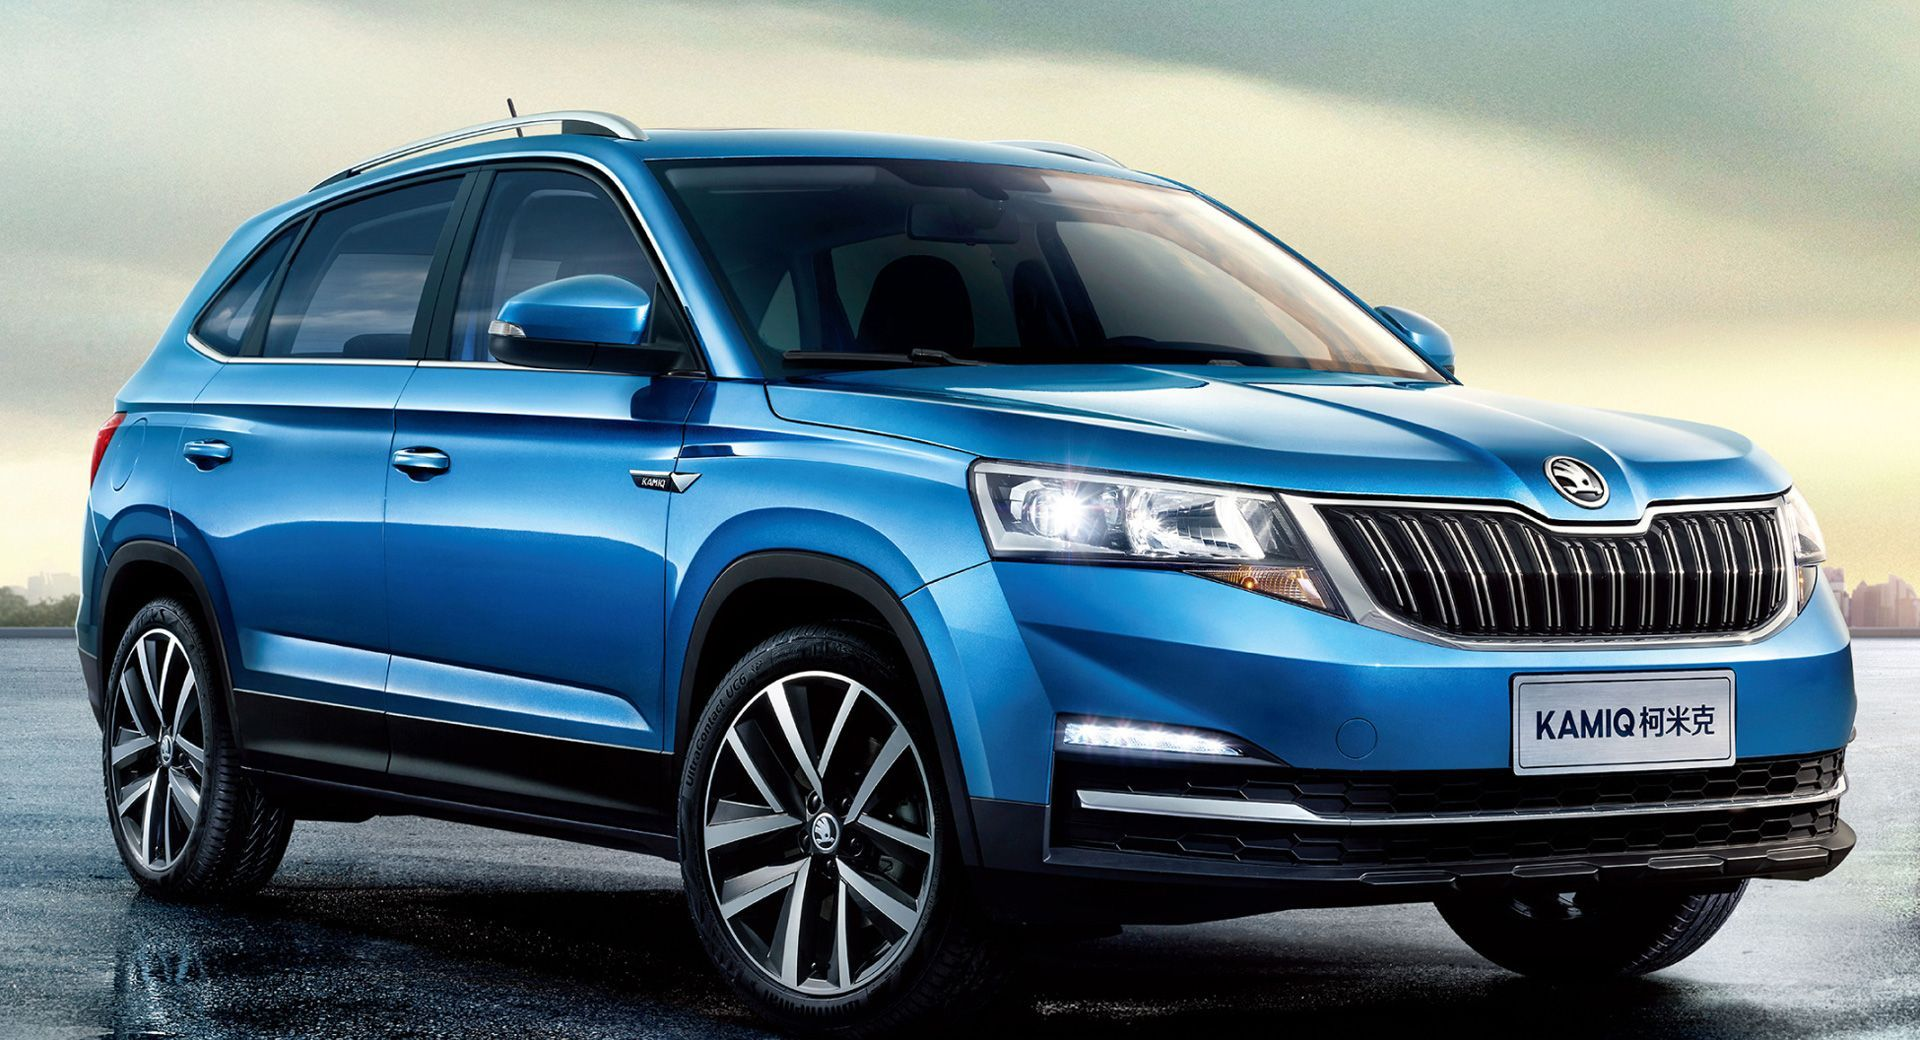 Skoda Kamiq Revealed In First Official Image Ahead Of